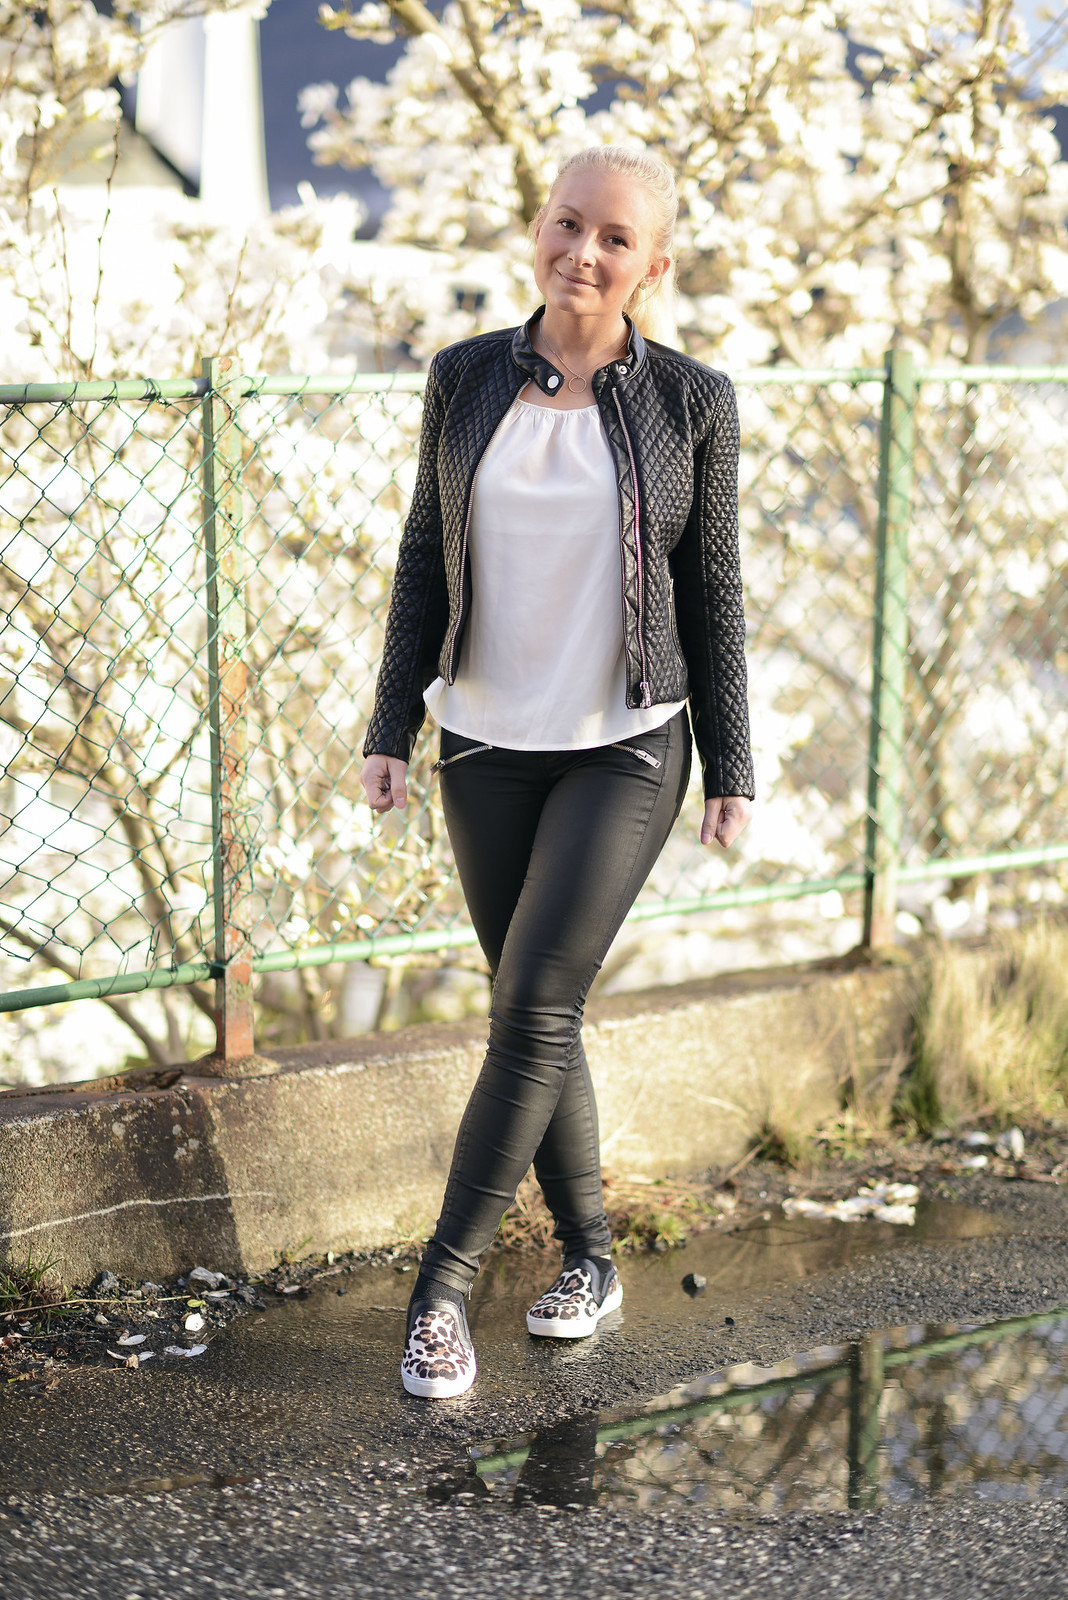 26apr.2015_Outfit_54064